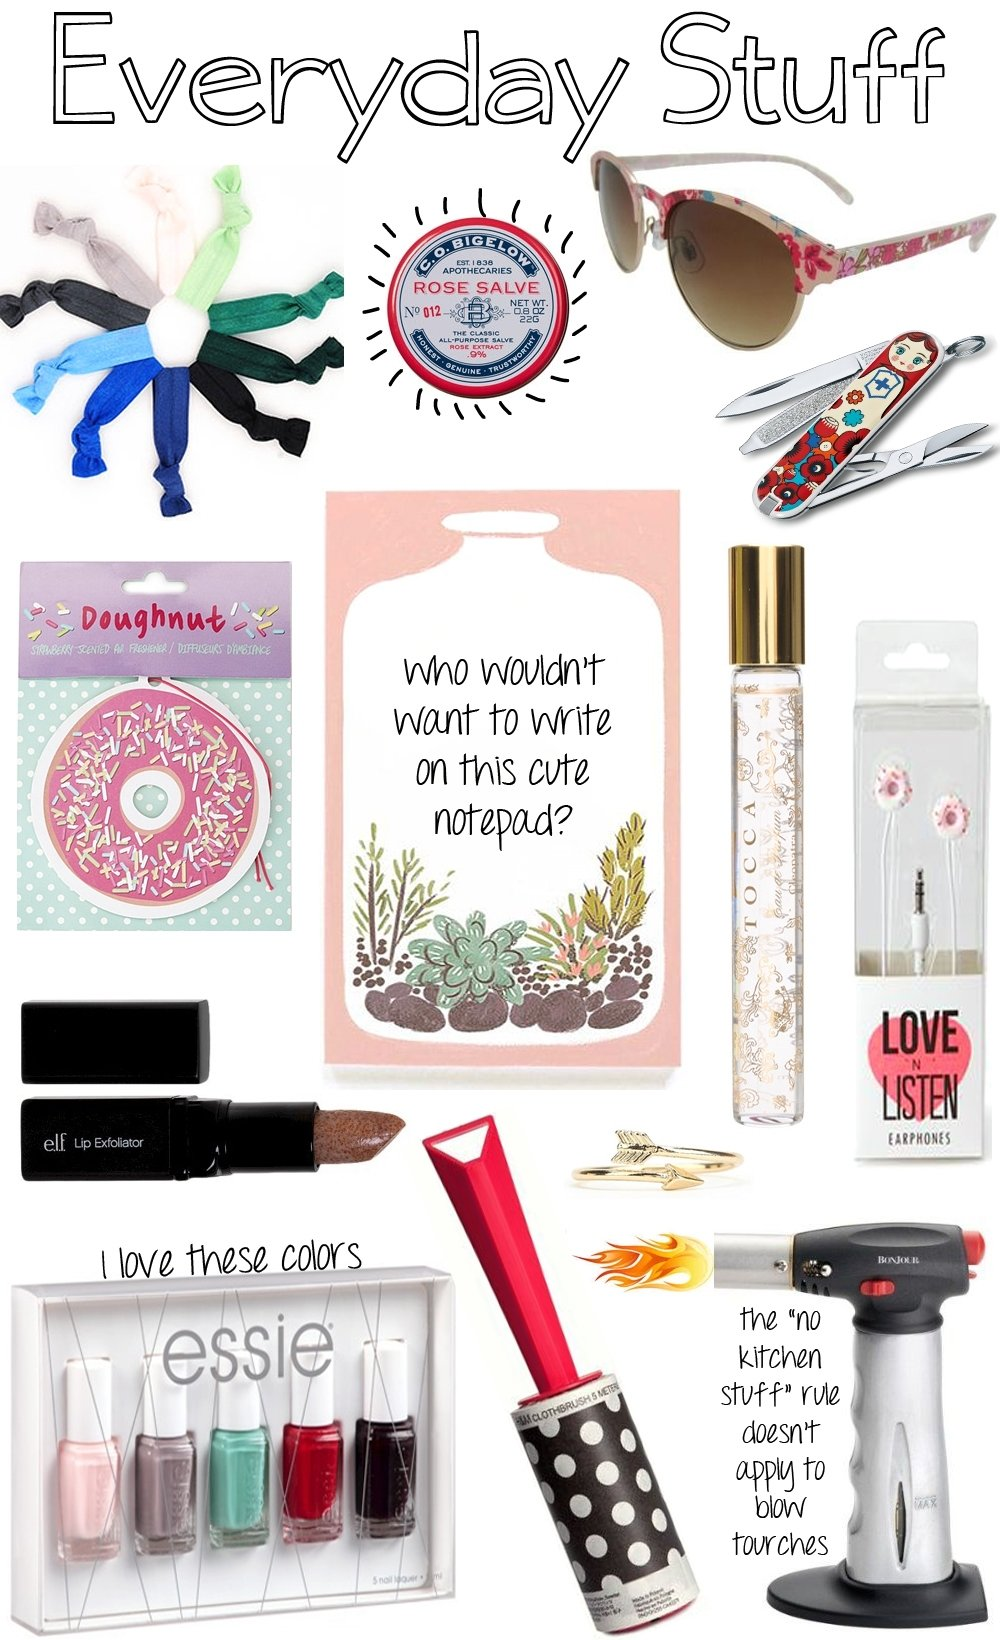 10 Lovable Stocking Stuffer Ideas For Her stocking stuffers for her making mondays 11 2020